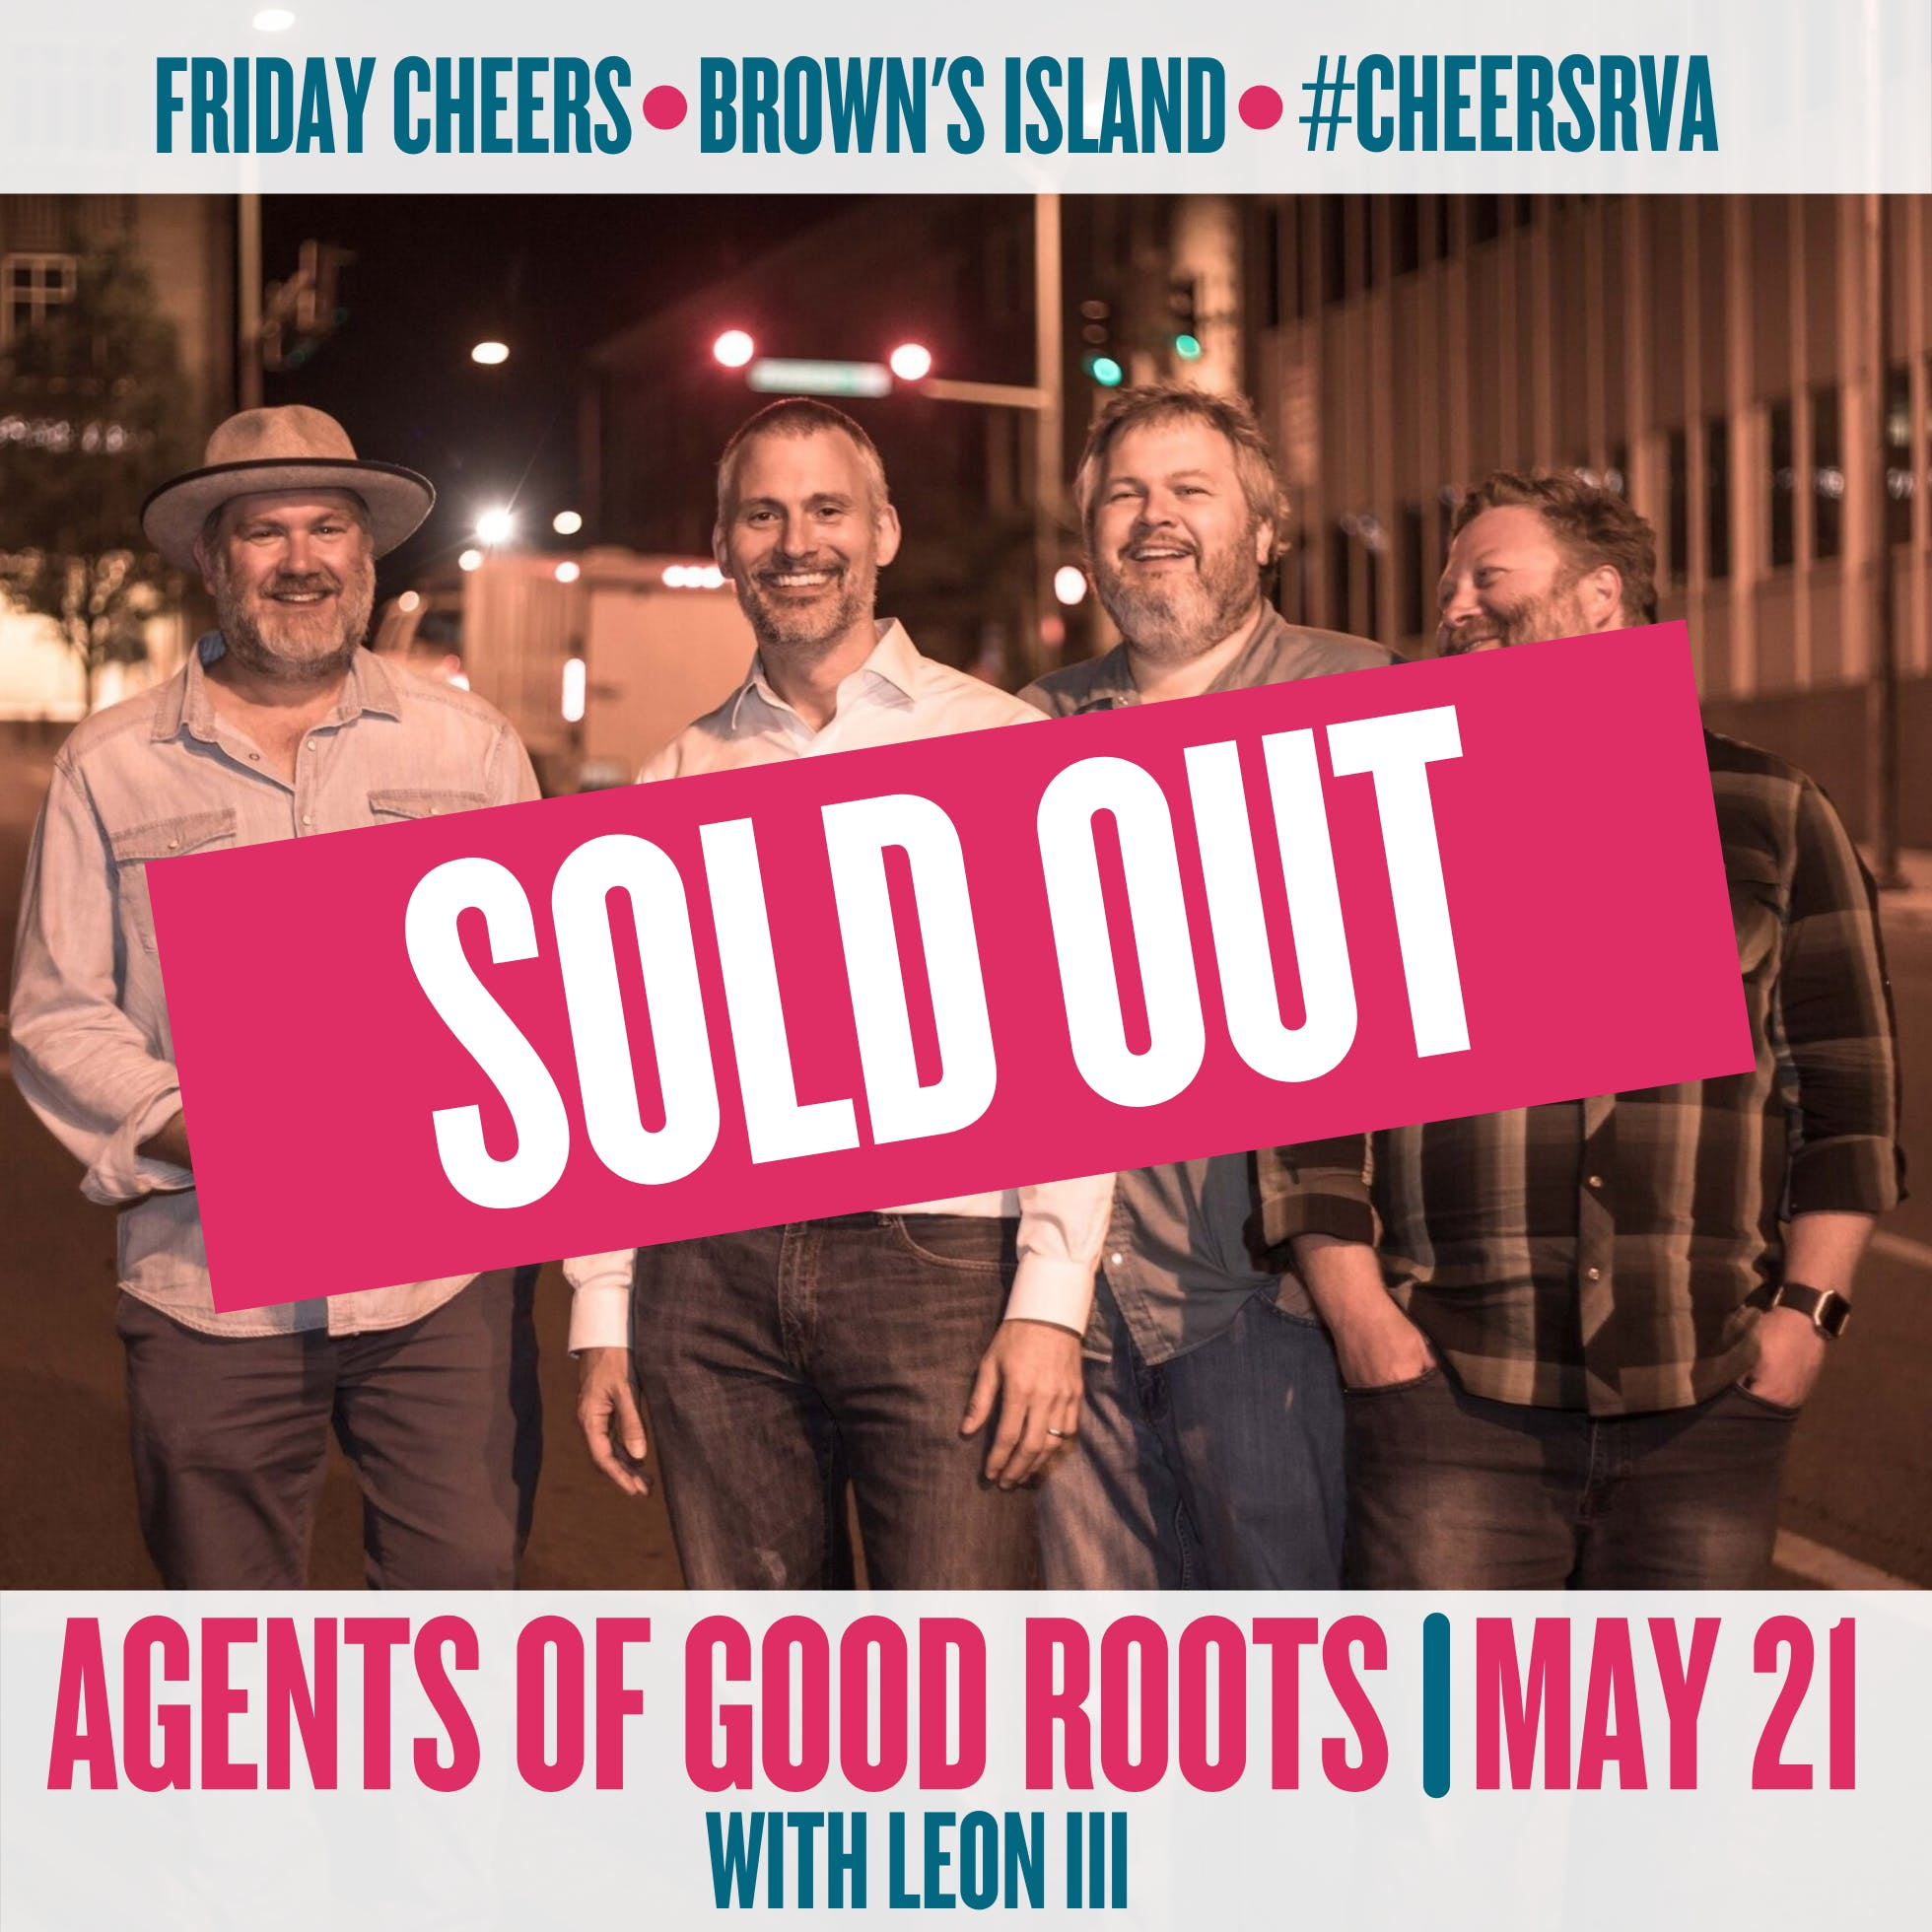 Agents of Good Roots with Leon III